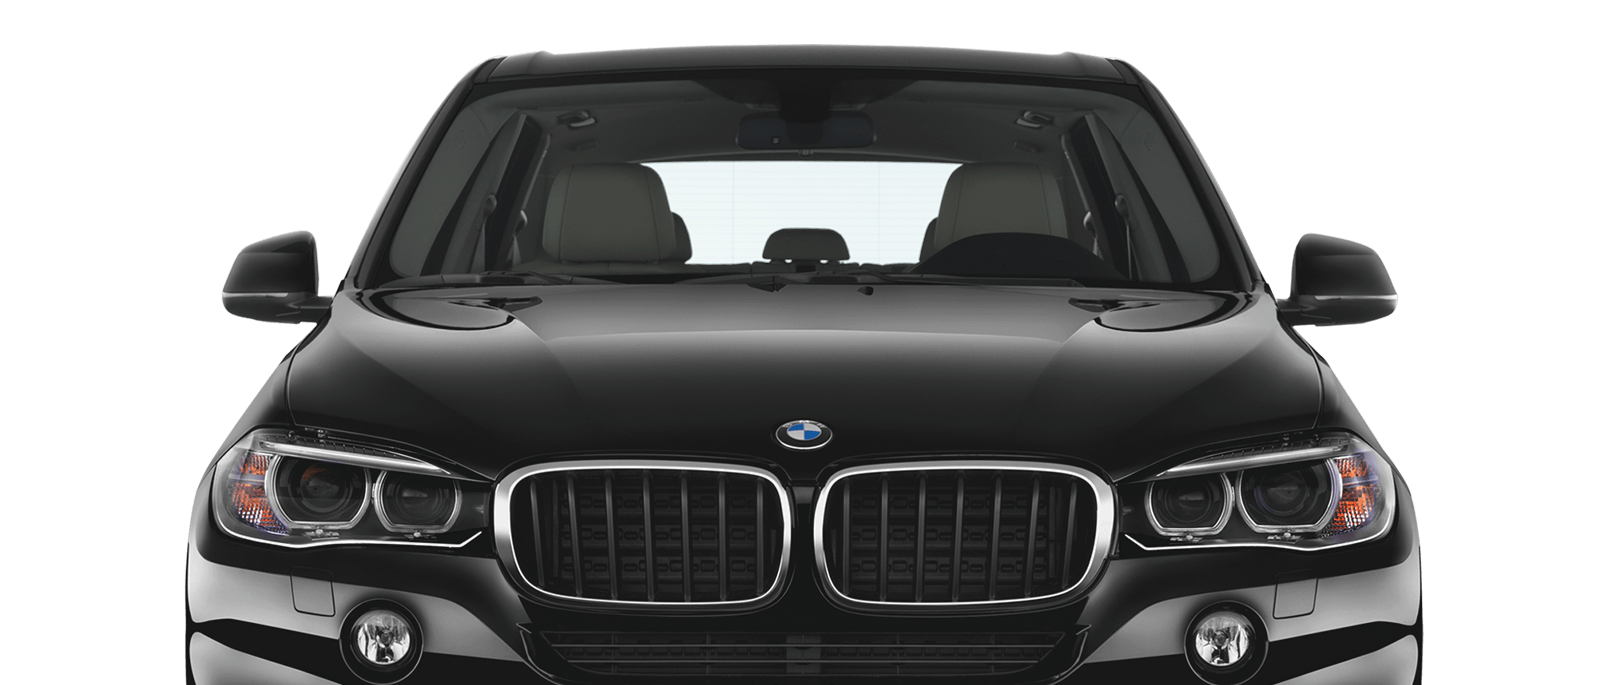 Bmw x5 car rental exotic car collection by enterprise for Enterprise rent a car mercedes benz